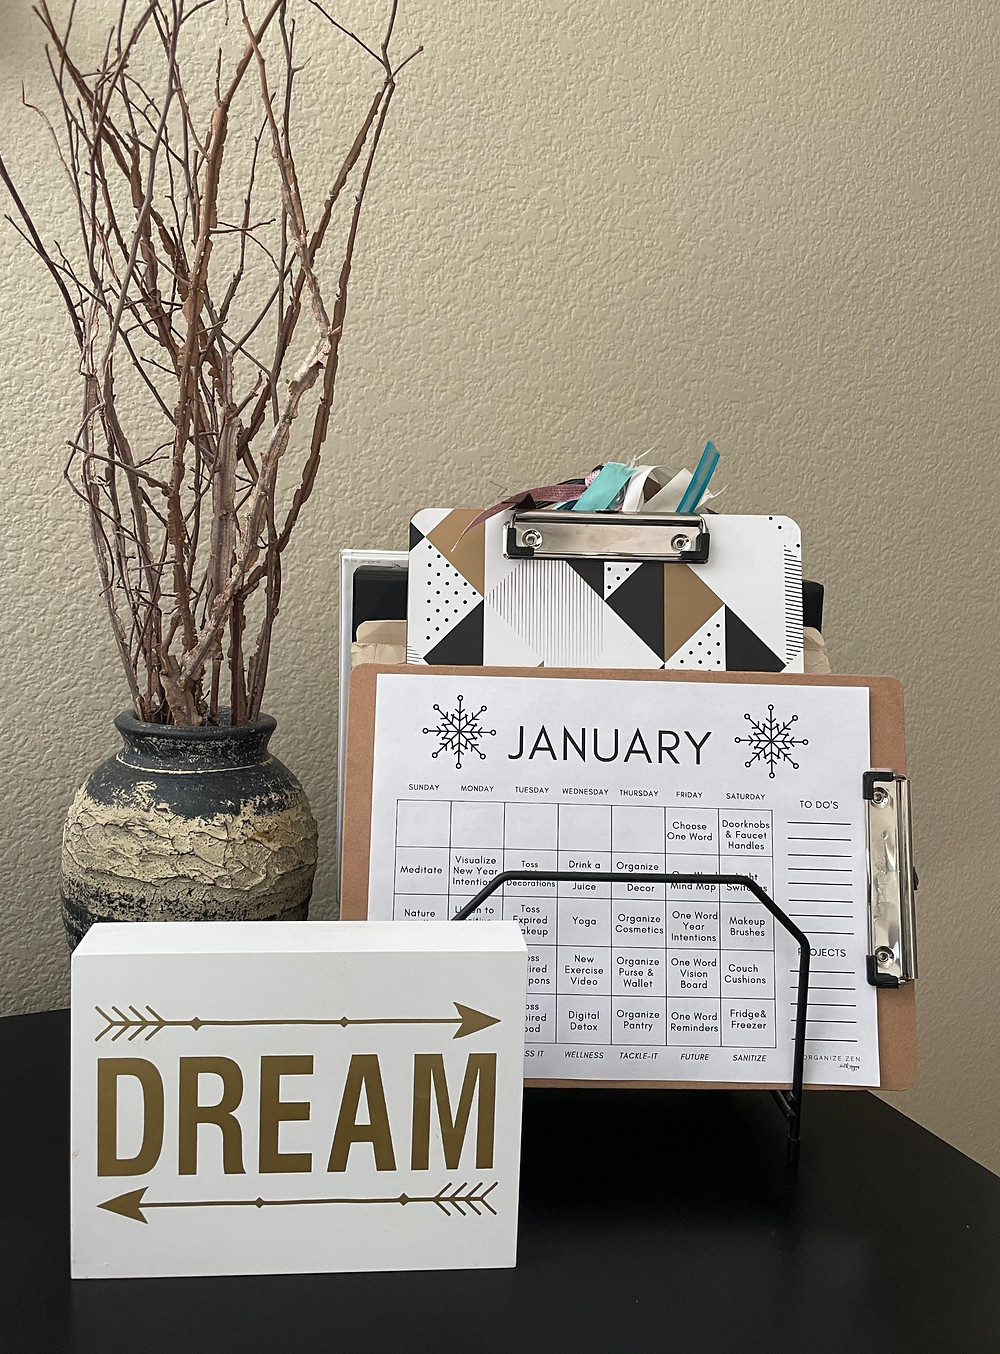 Desk with dream sign and files